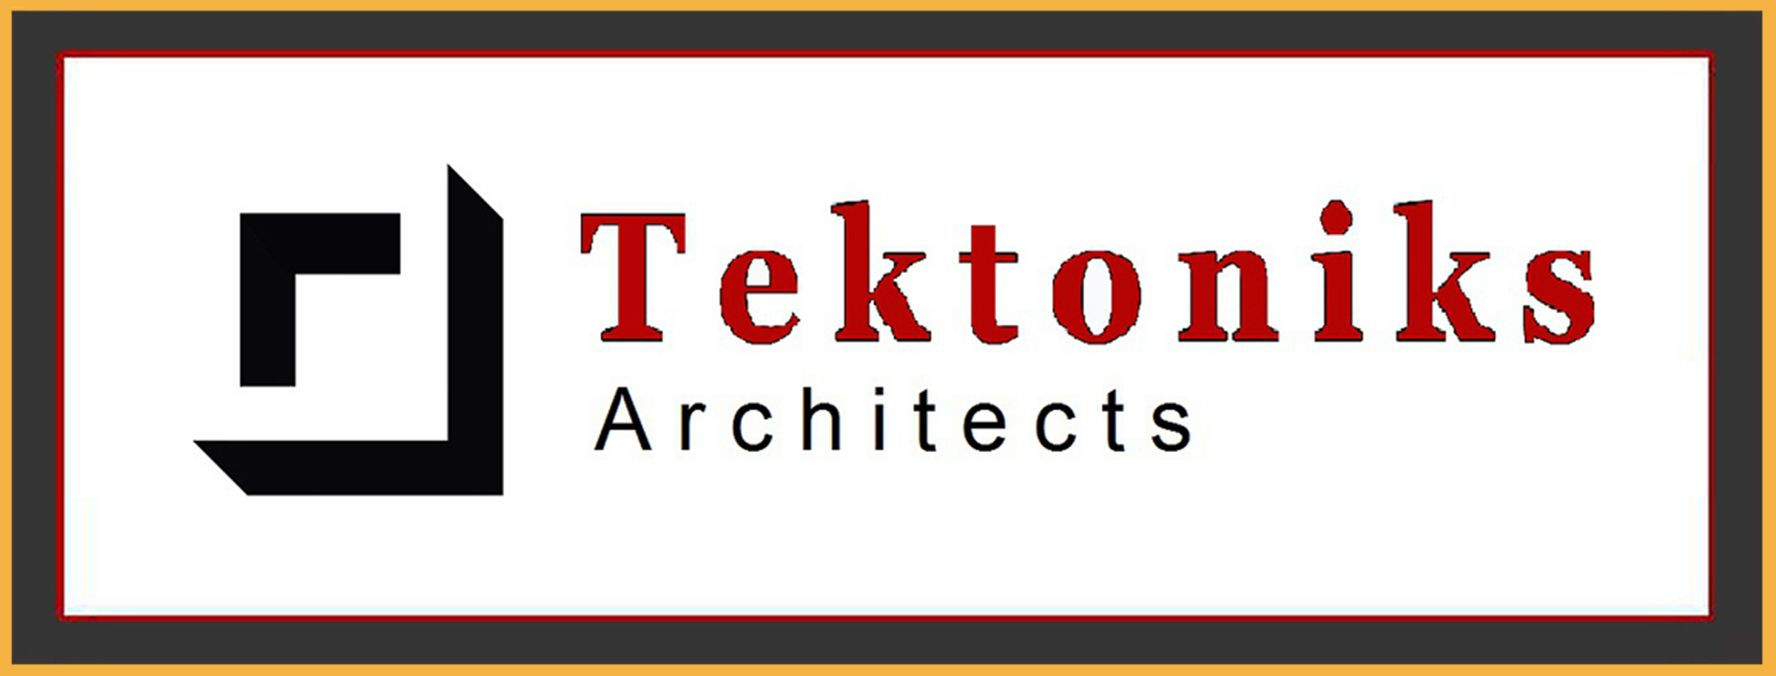 Tektoniks	Architects